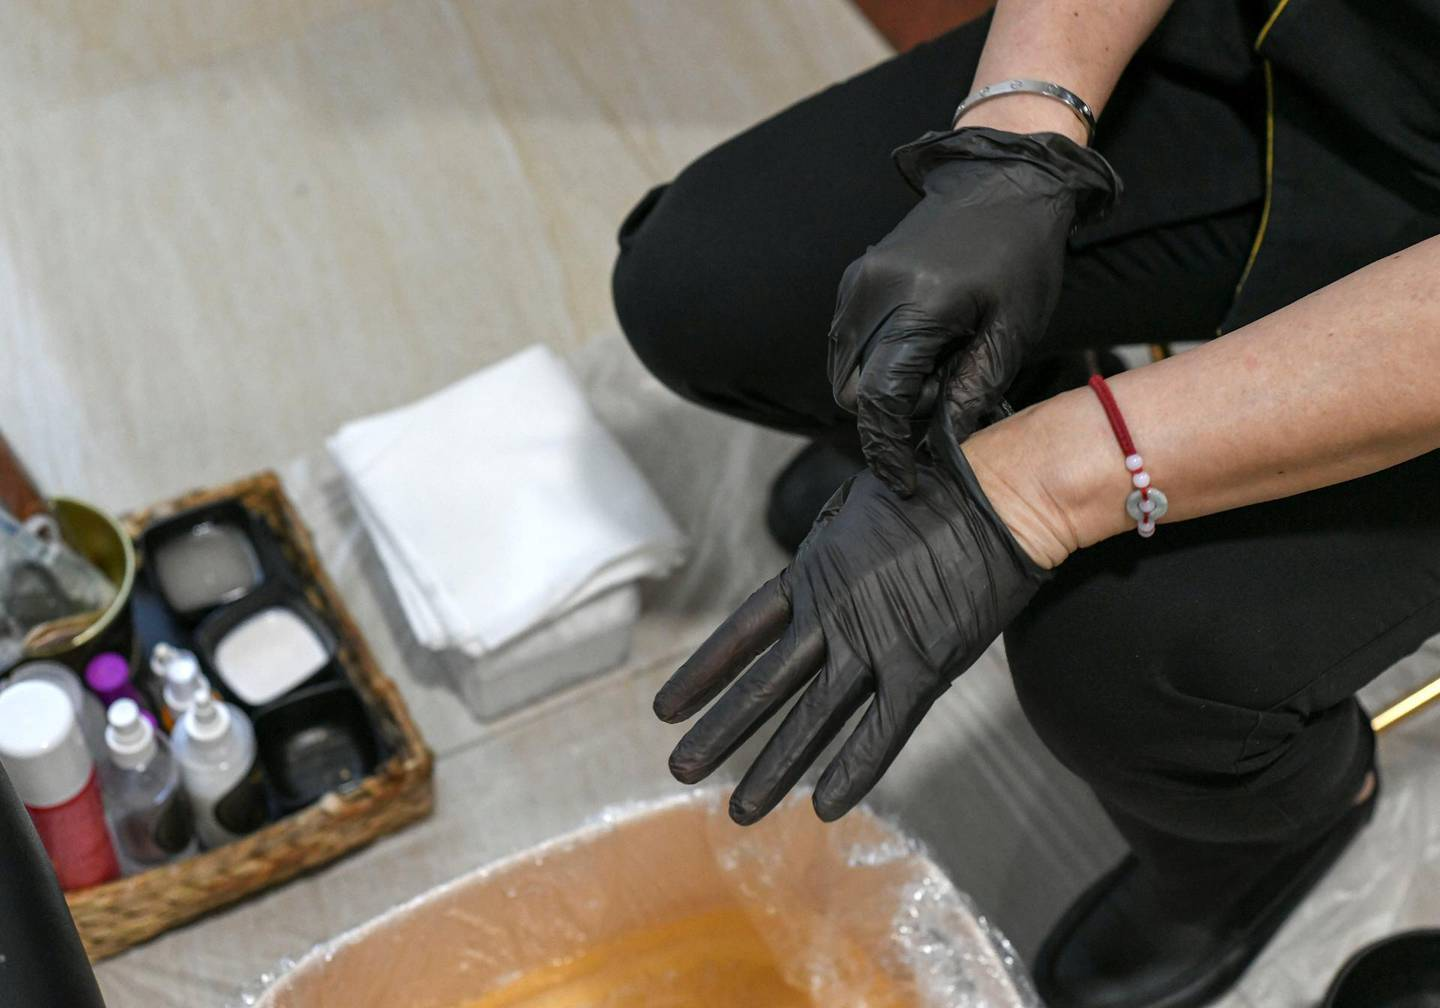 Abu Dhabi, United Arab Emirates - All technicians compulsory wear gloves as part of their uniform for the home service from Roe Spa, in Tourist Club Area. Khushnum Bhandari for The National